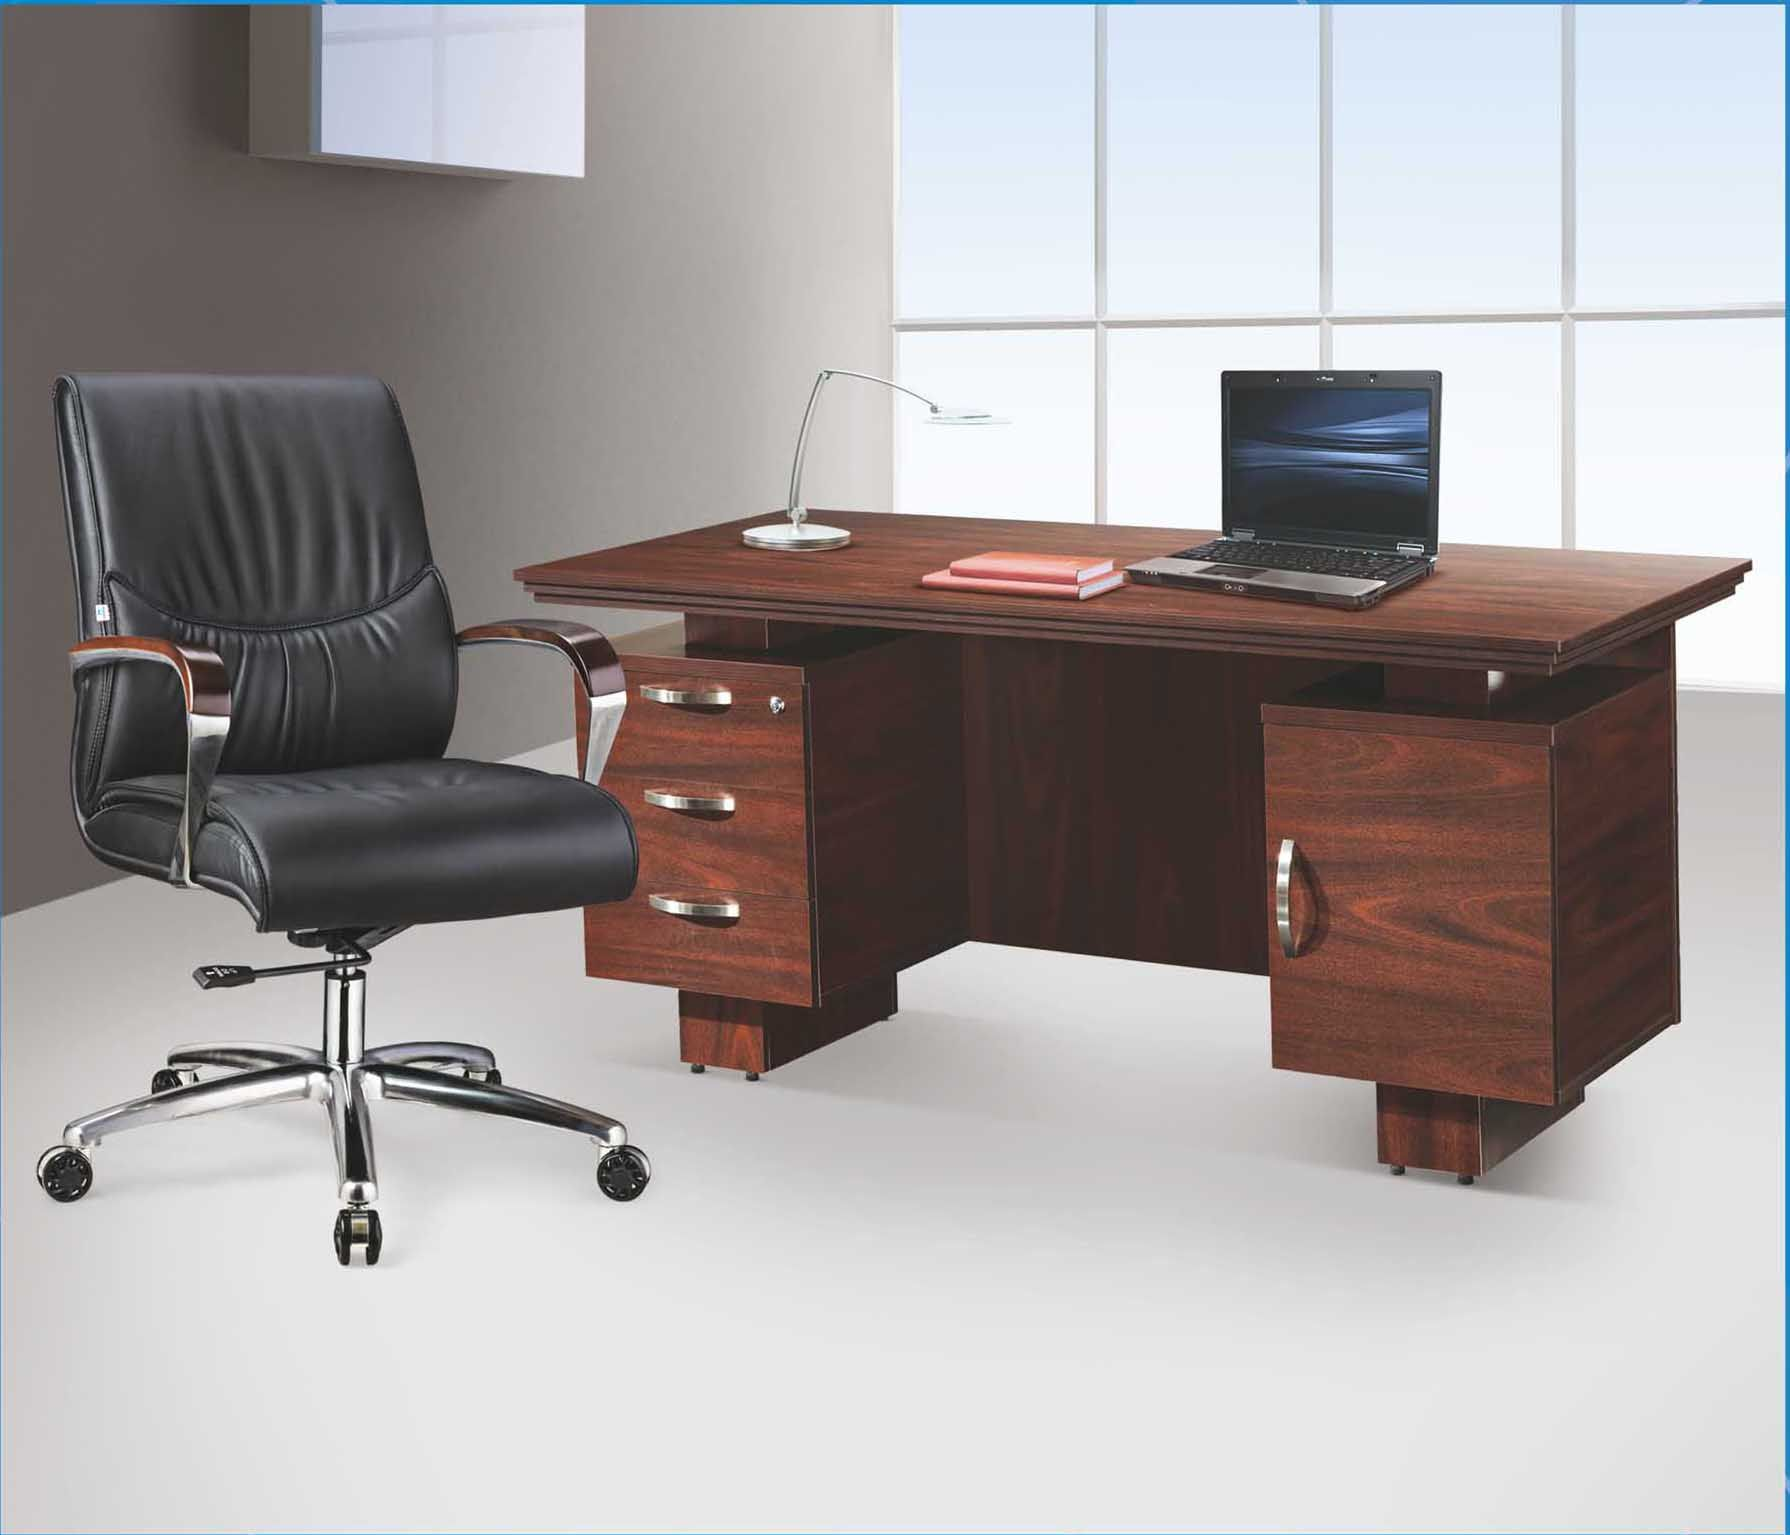 Elegant Buy Modular Office Furniture Online